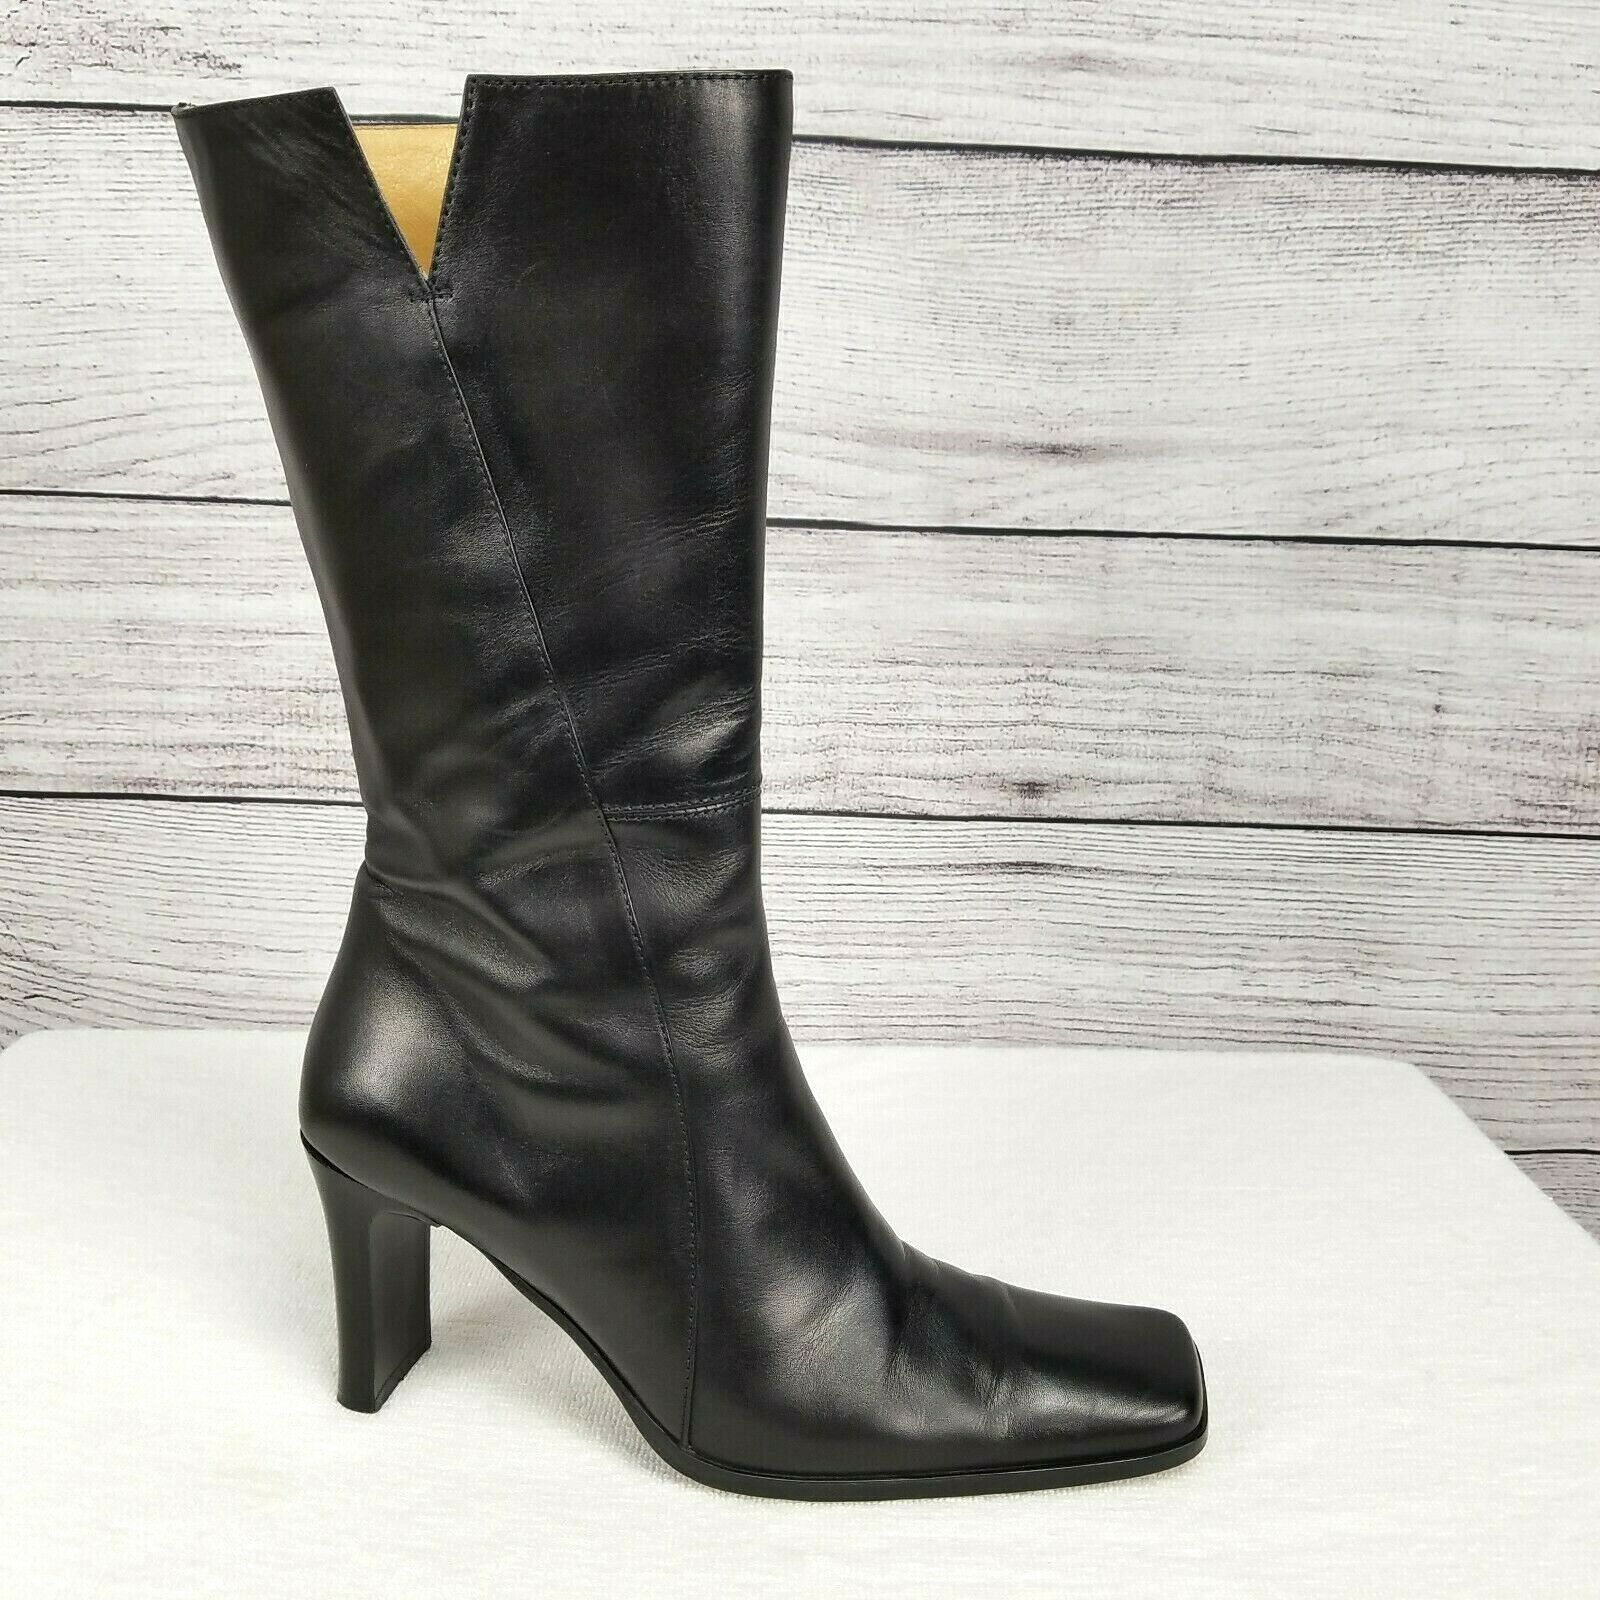 Size 38 Charles David Scorch Studded Boots Black Leather Womens Combat Shoe For Sale Online Ebay